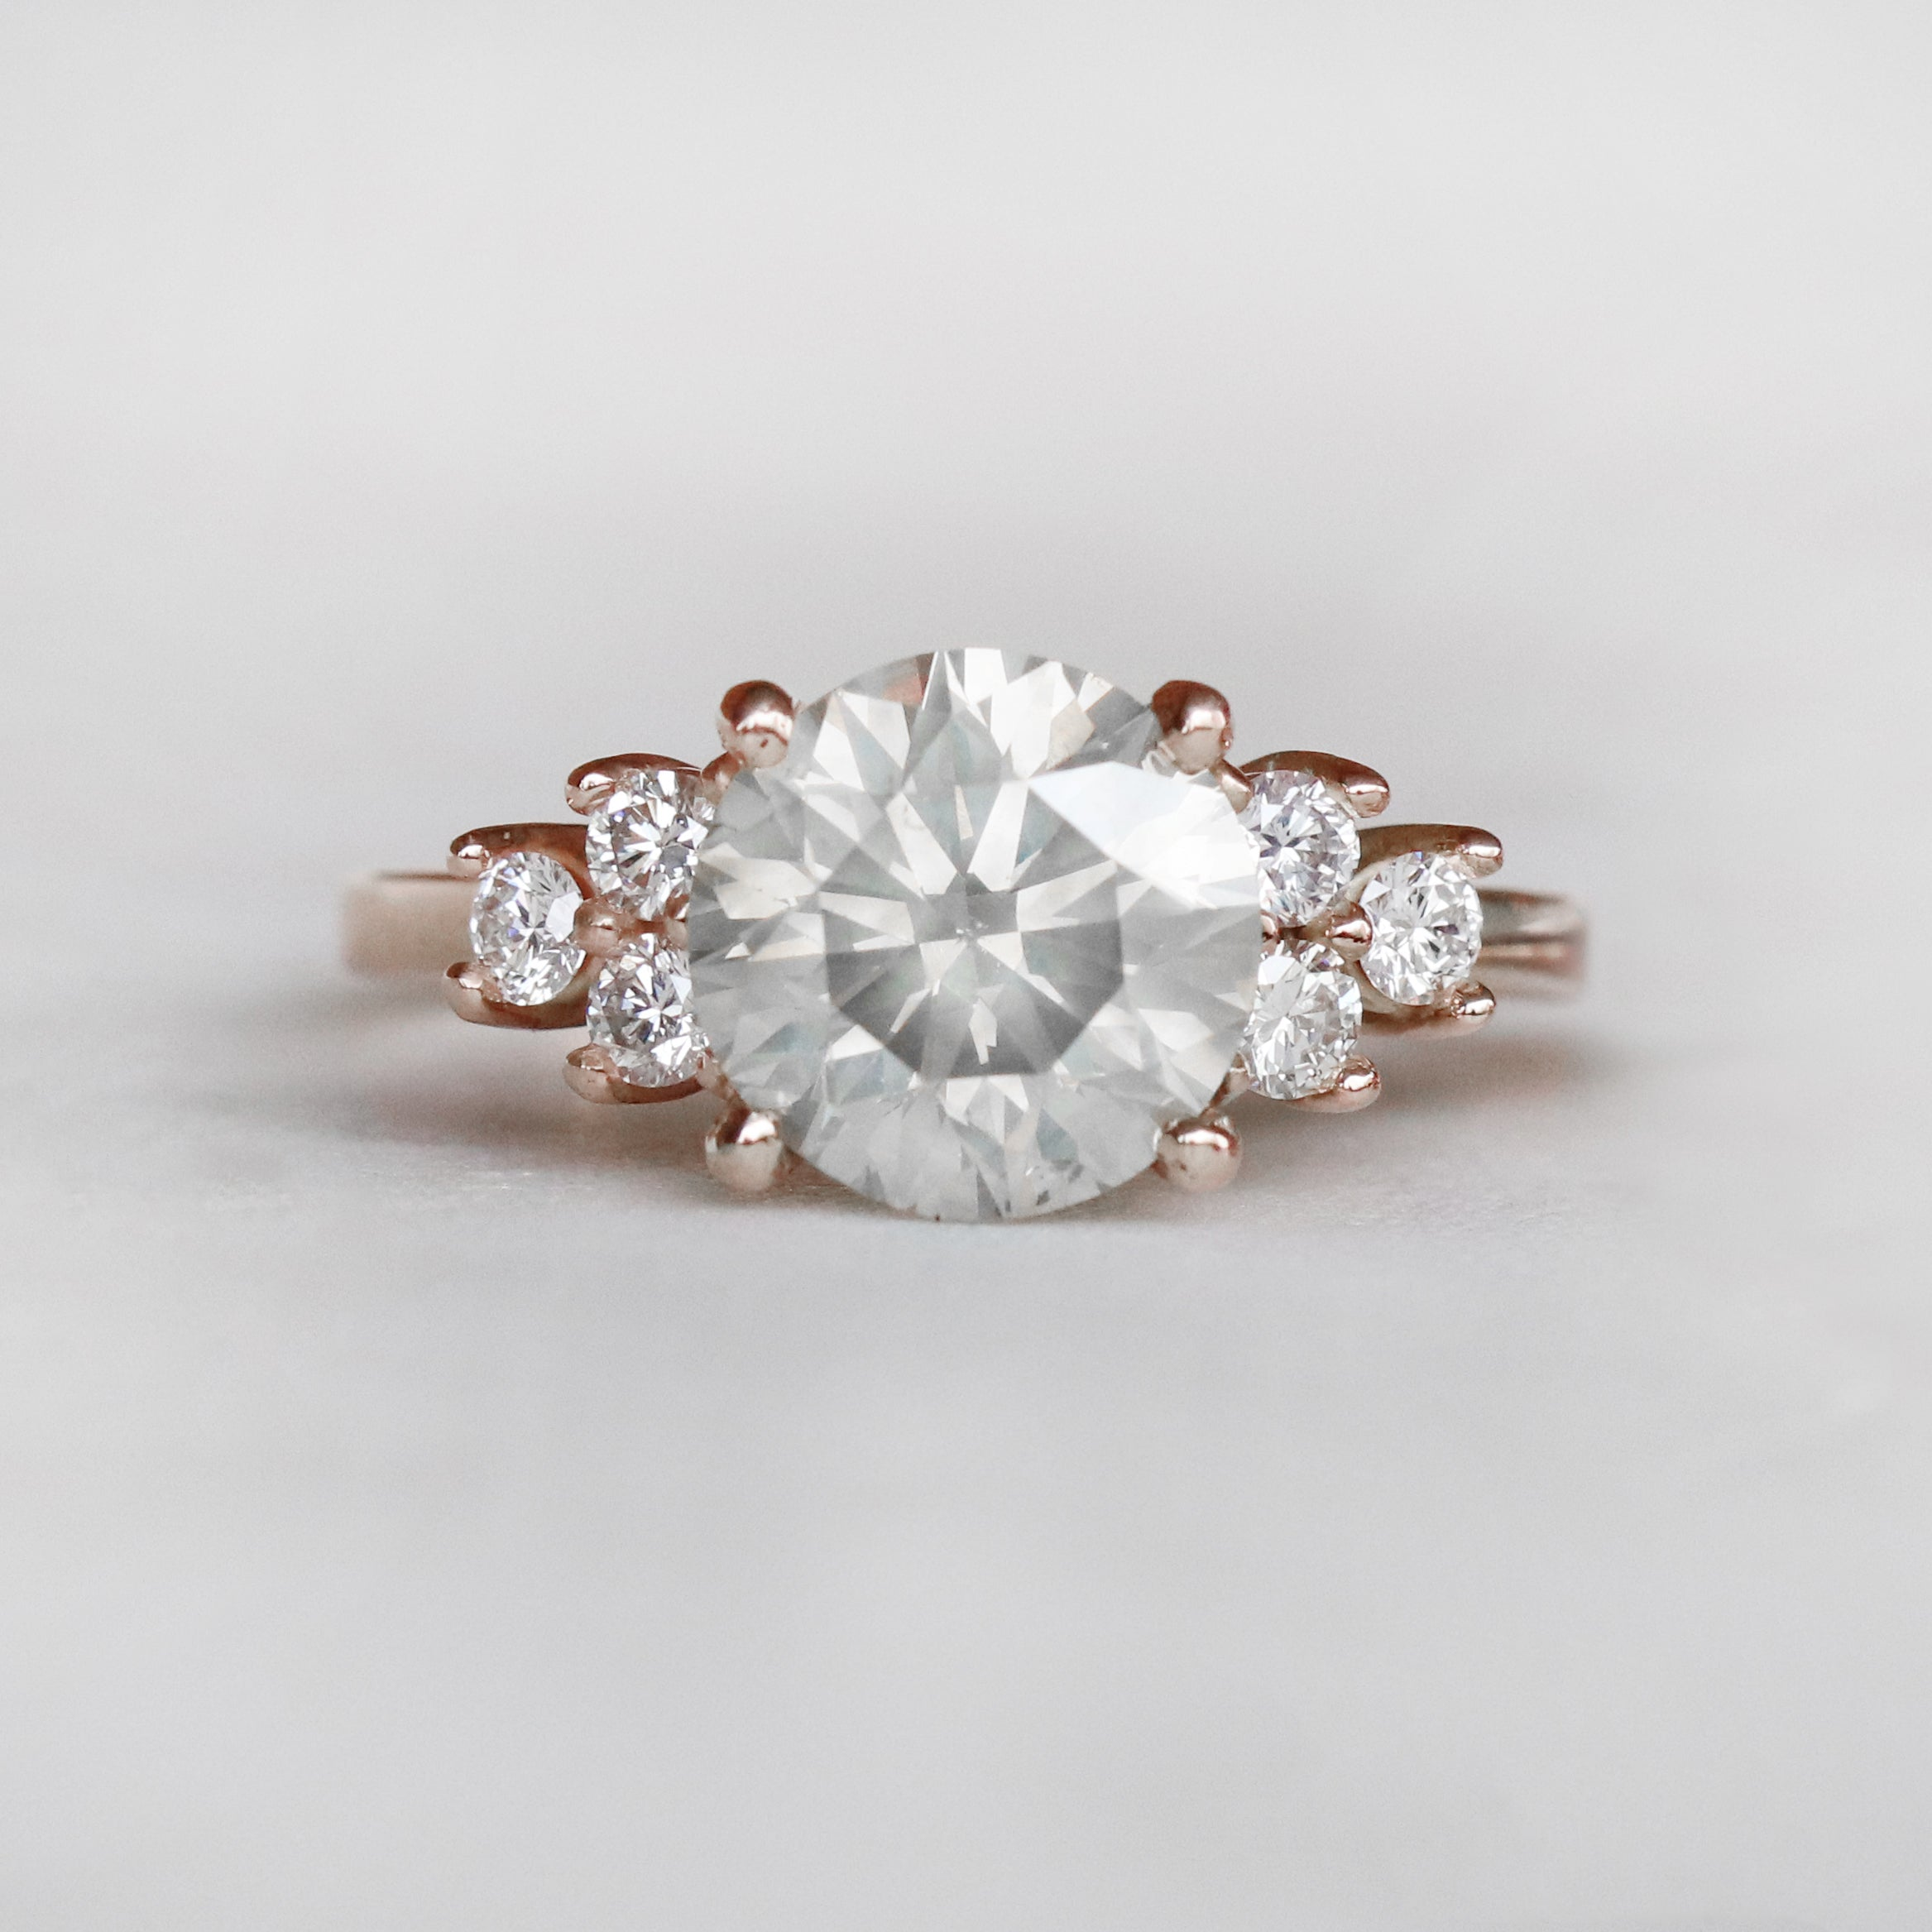 Veragene Ring with a 3 carat Celestial GIA Certified Diamond in 14k Rose Gold - Ready to Size and Ship - Salt & Pepper Celestial Diamond Engagement Rings and Wedding Bands  by Midwinter Co.